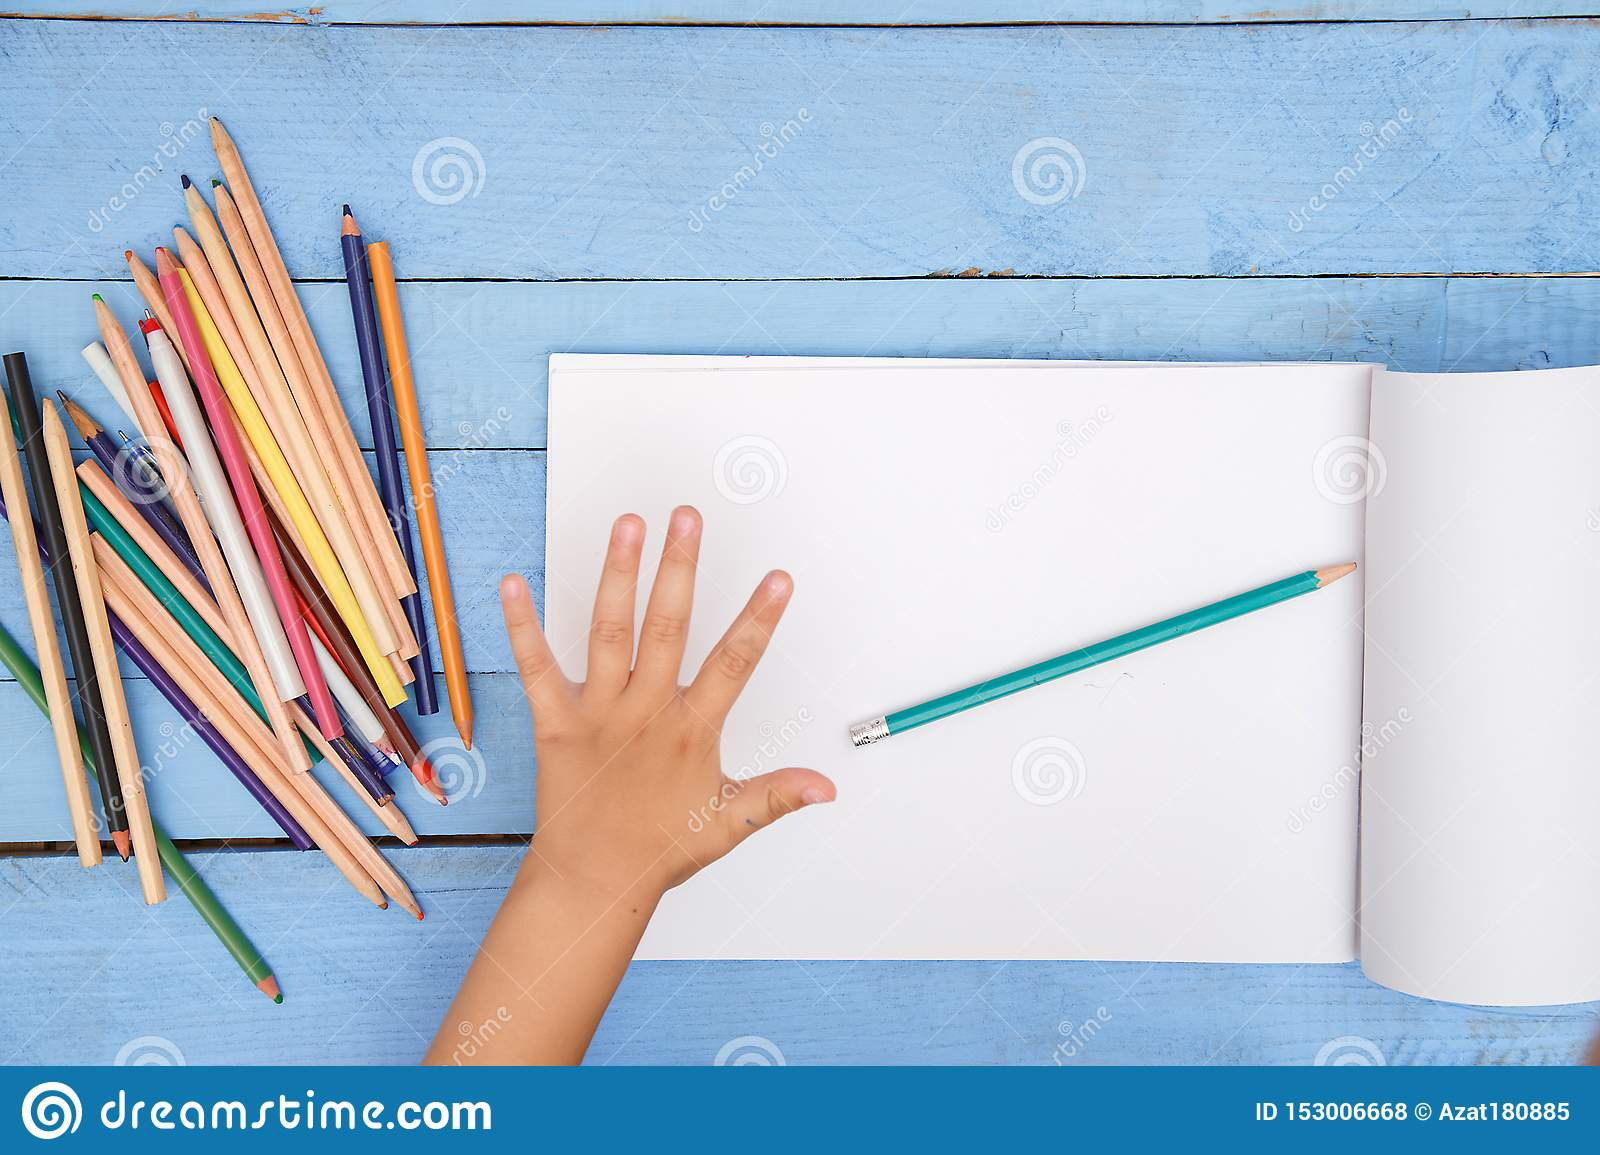 Children`s hands draw with pencils in the album on the blue table